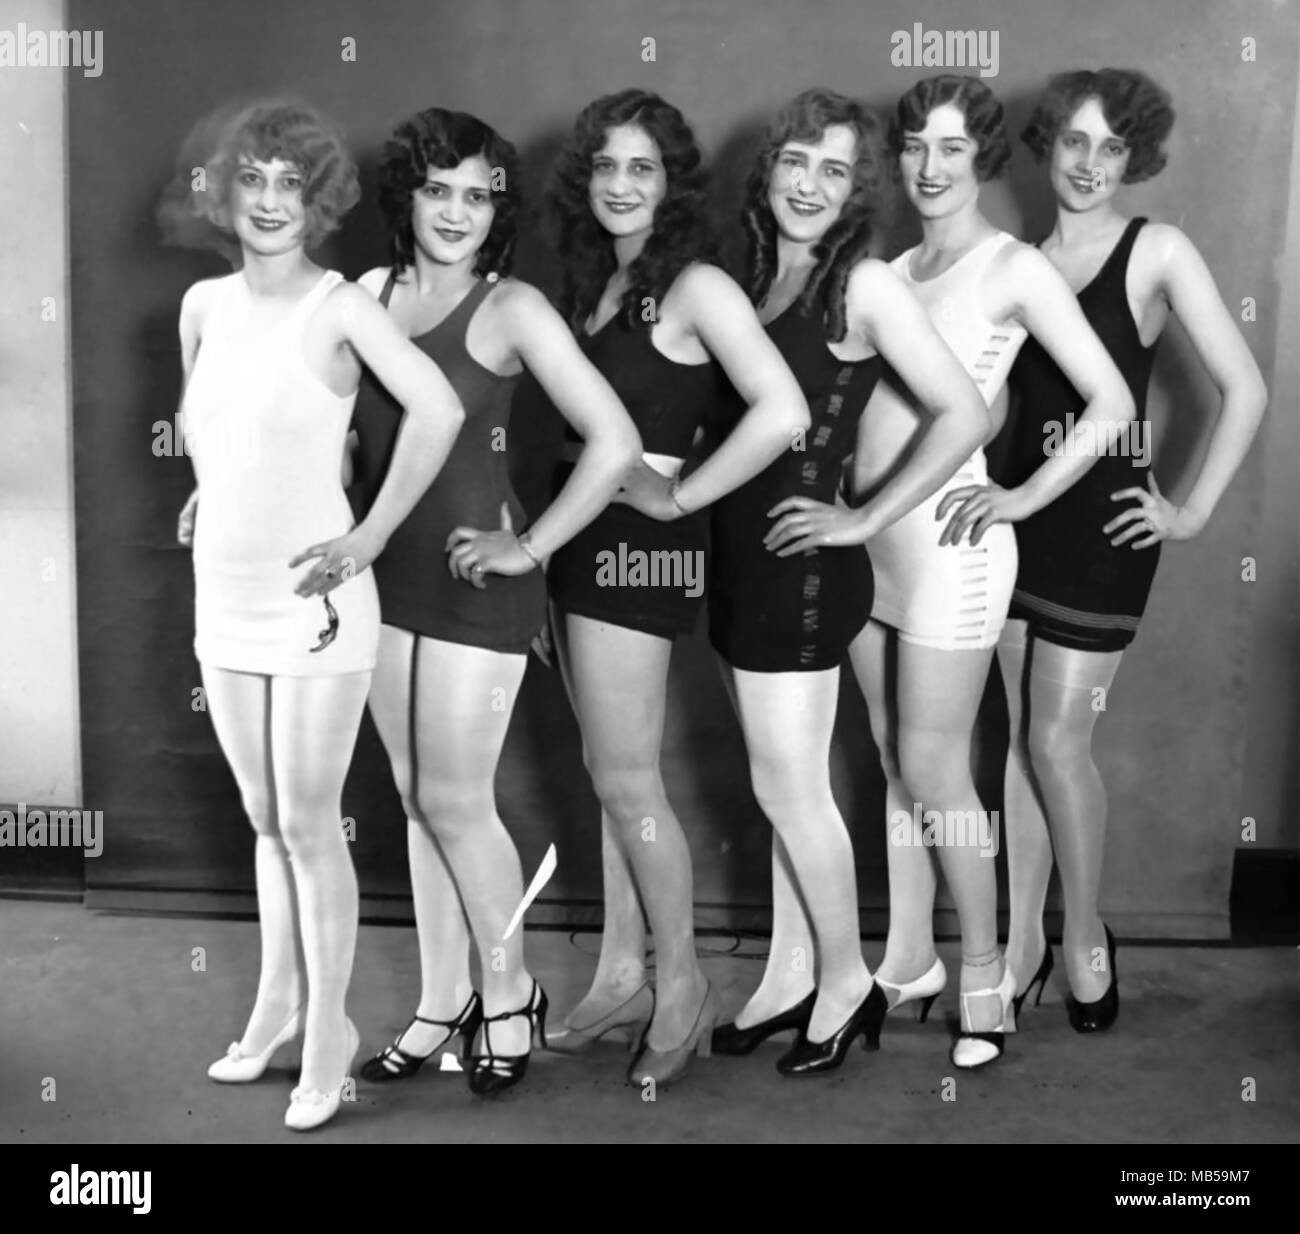 MISS CHICAGO beauty contest entrants about 1920 Stock Photo